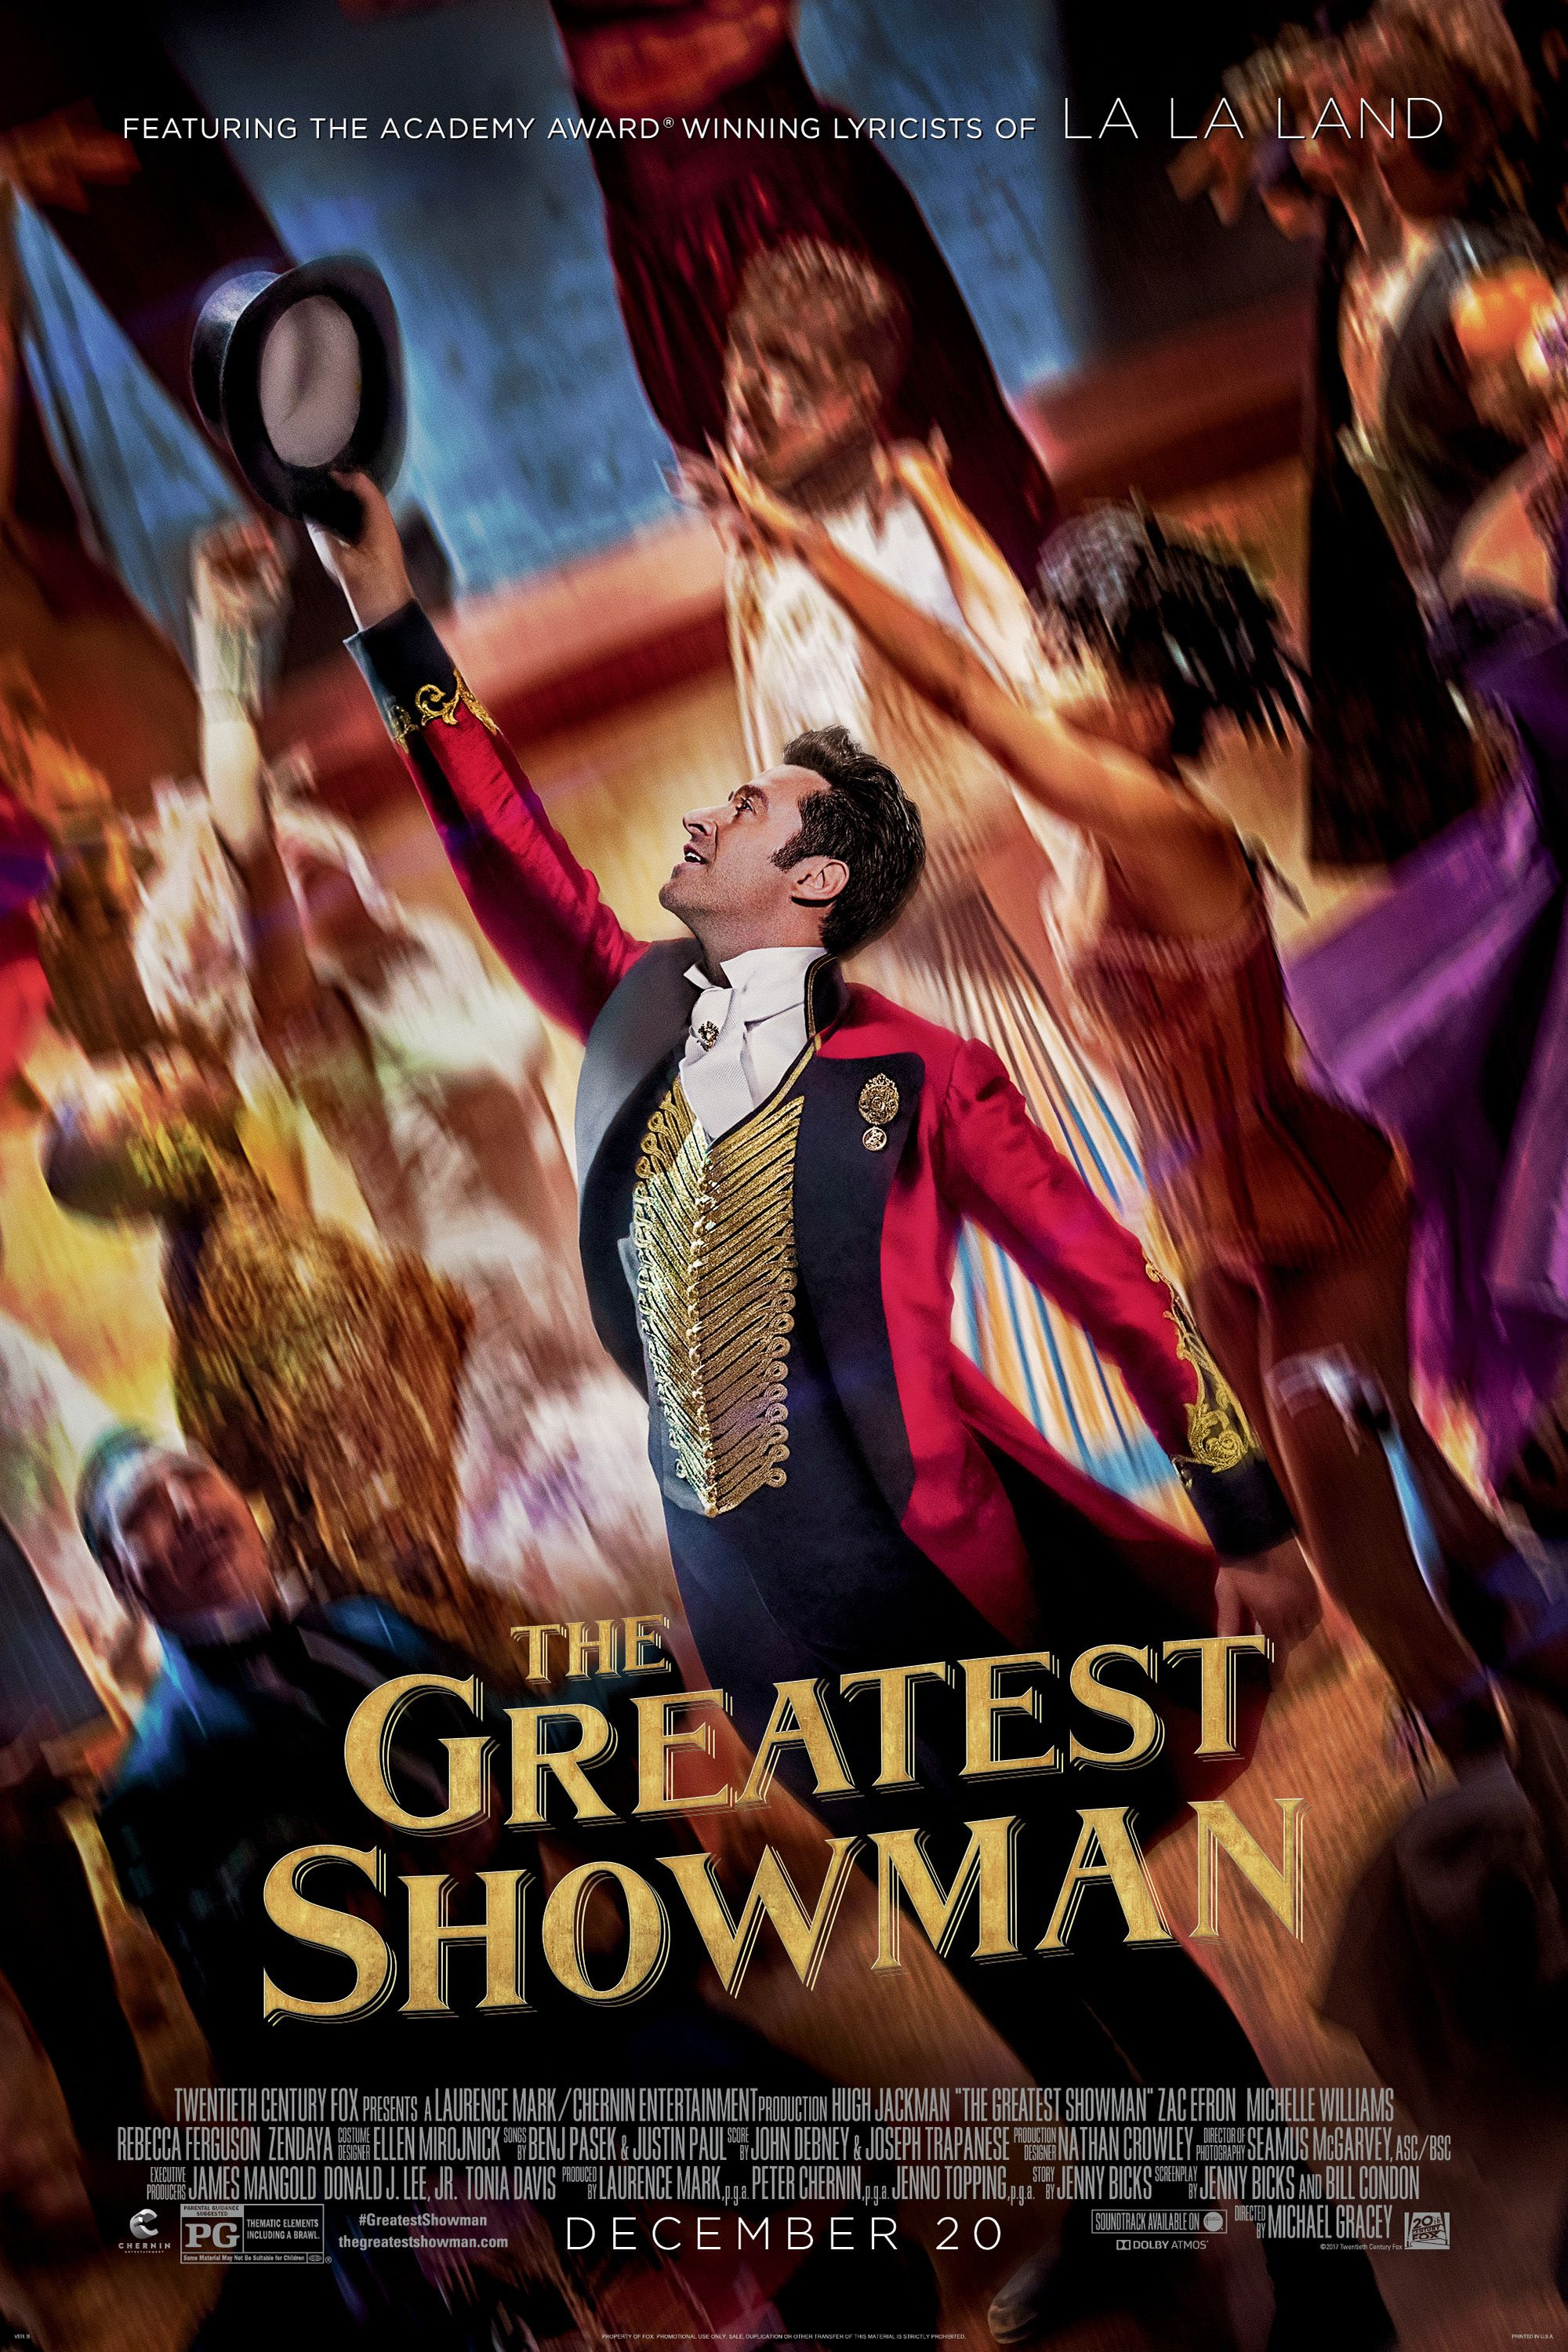 The Greatest Showman West Wind DriveIn The greatest